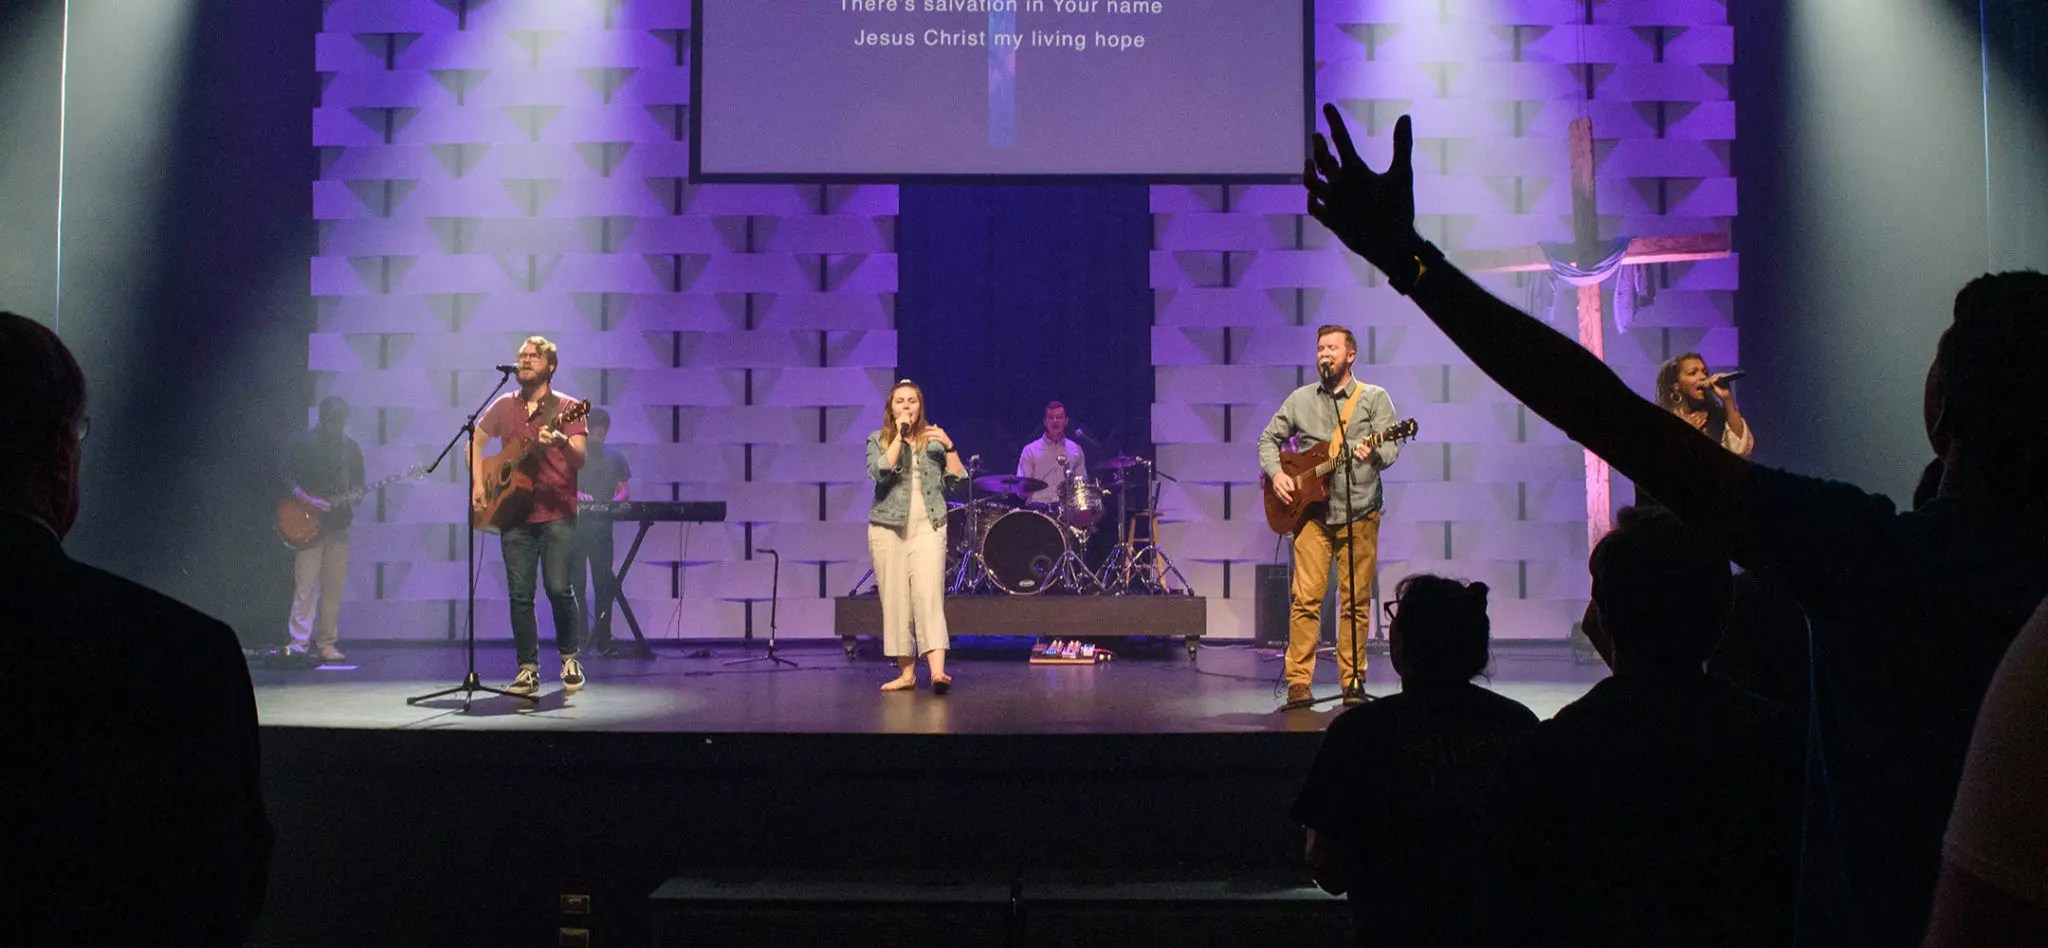 A worship service at Charleston Southern University with a student in the audience raising his arms up in praise.